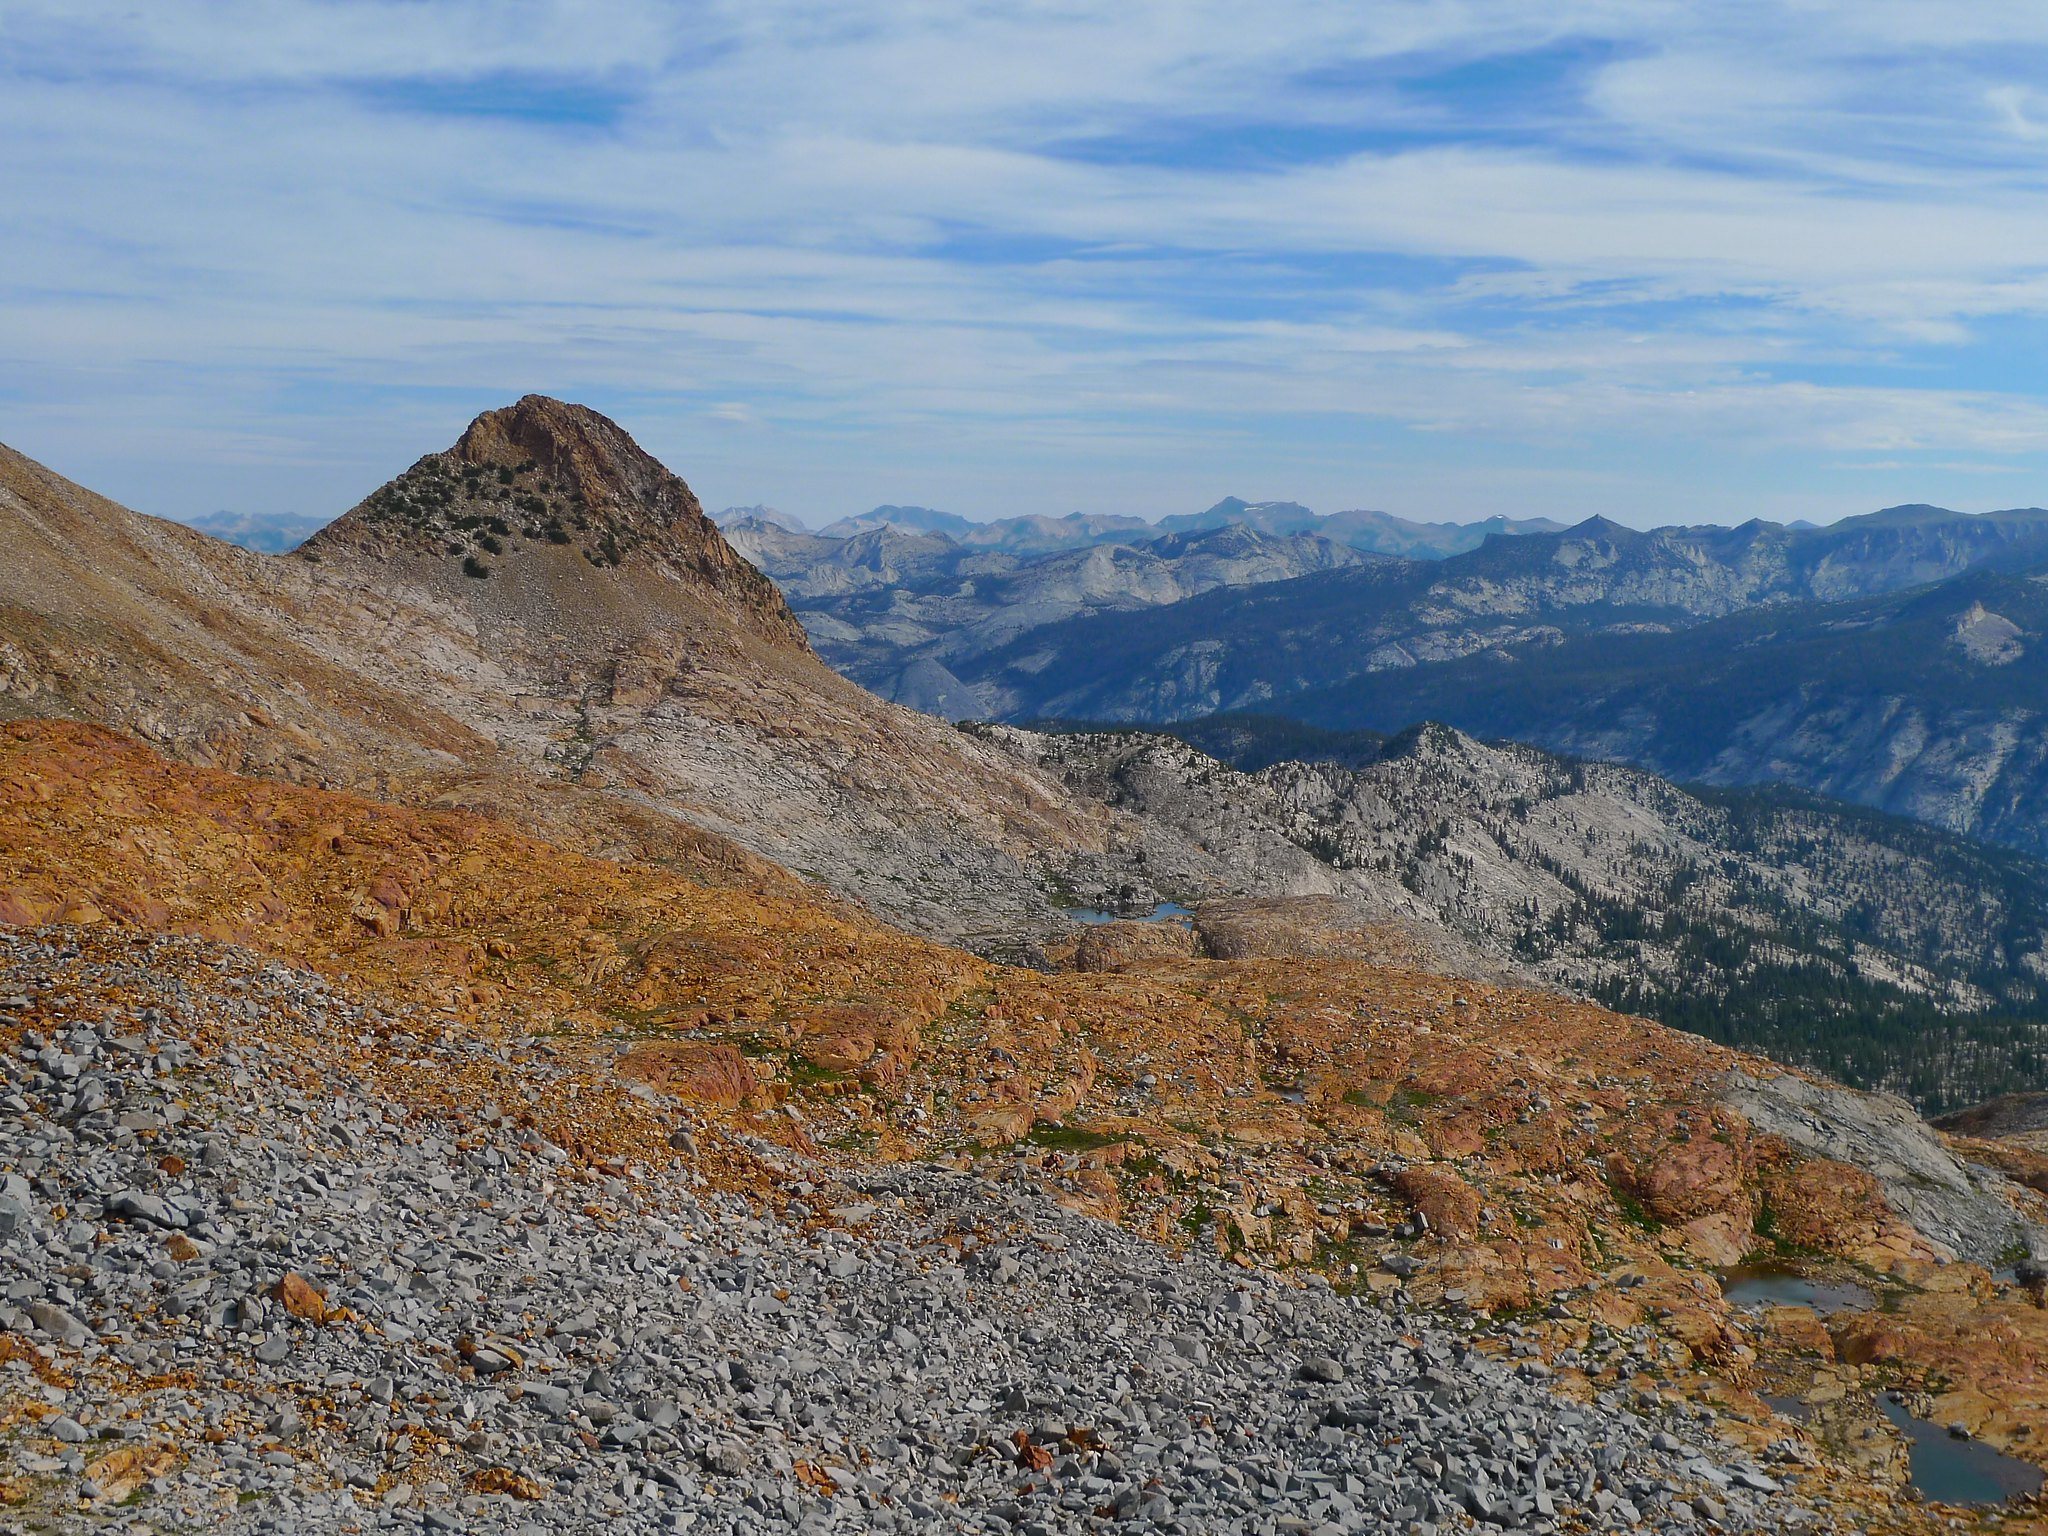 Looking northwest from Red Peak Pass